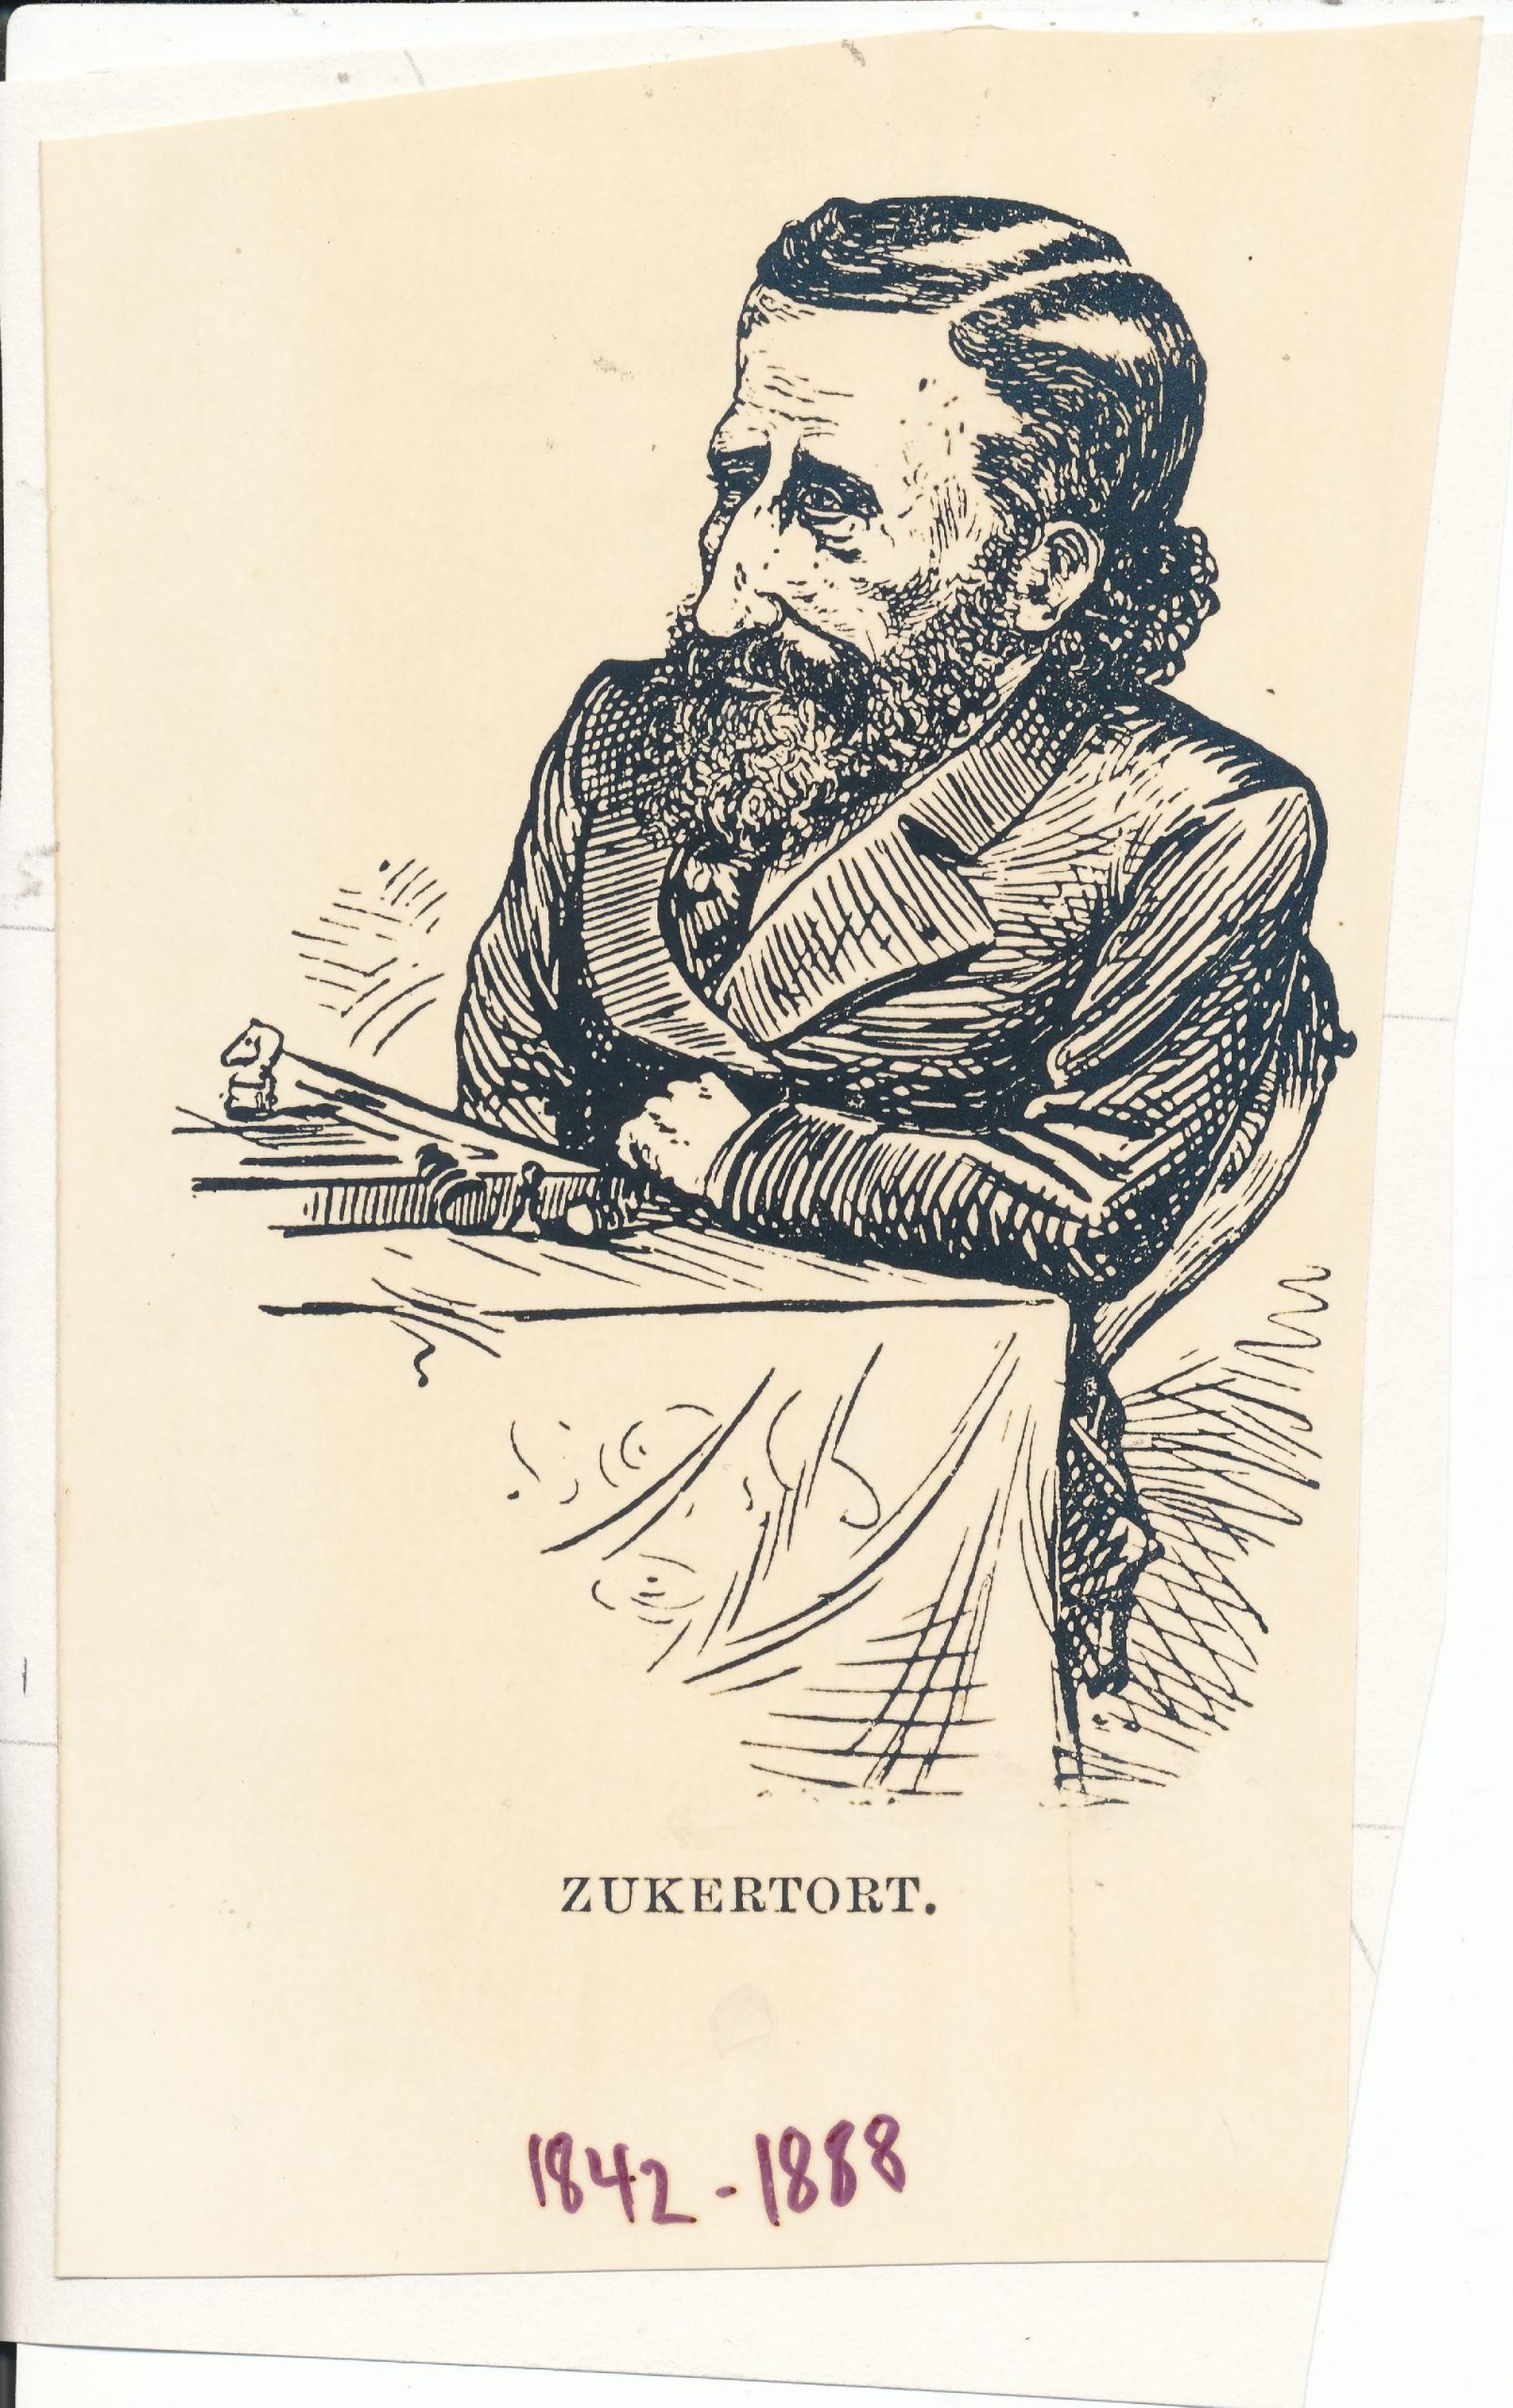 Johannes Hermann Zukertort (07-ix-1842 20-vi-1888), from the Illustrated London News